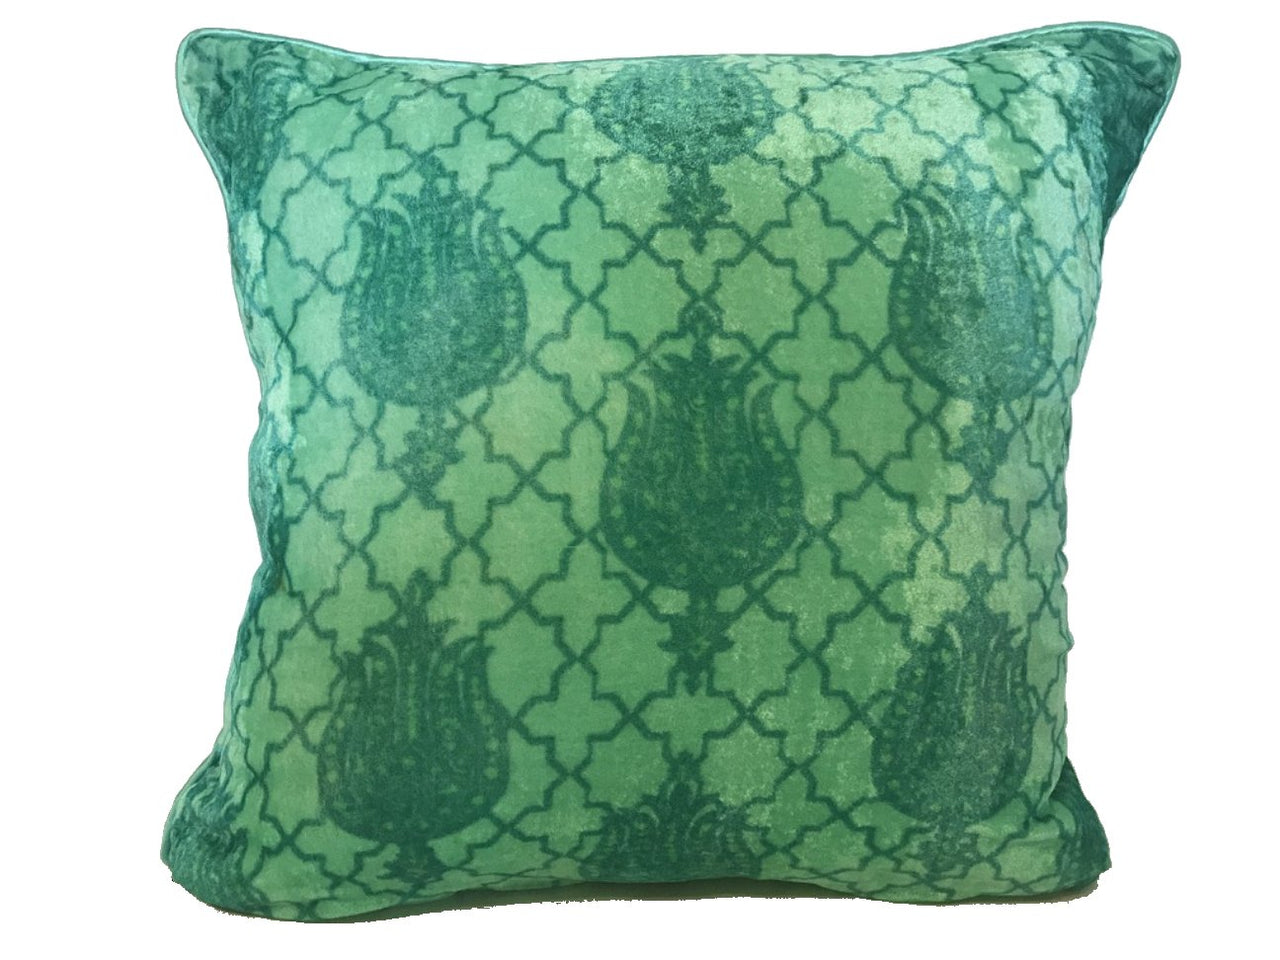 Velvet Cushion 20x20 Closed Dark Green Lotus Flower on Green Background - Maison Fusion